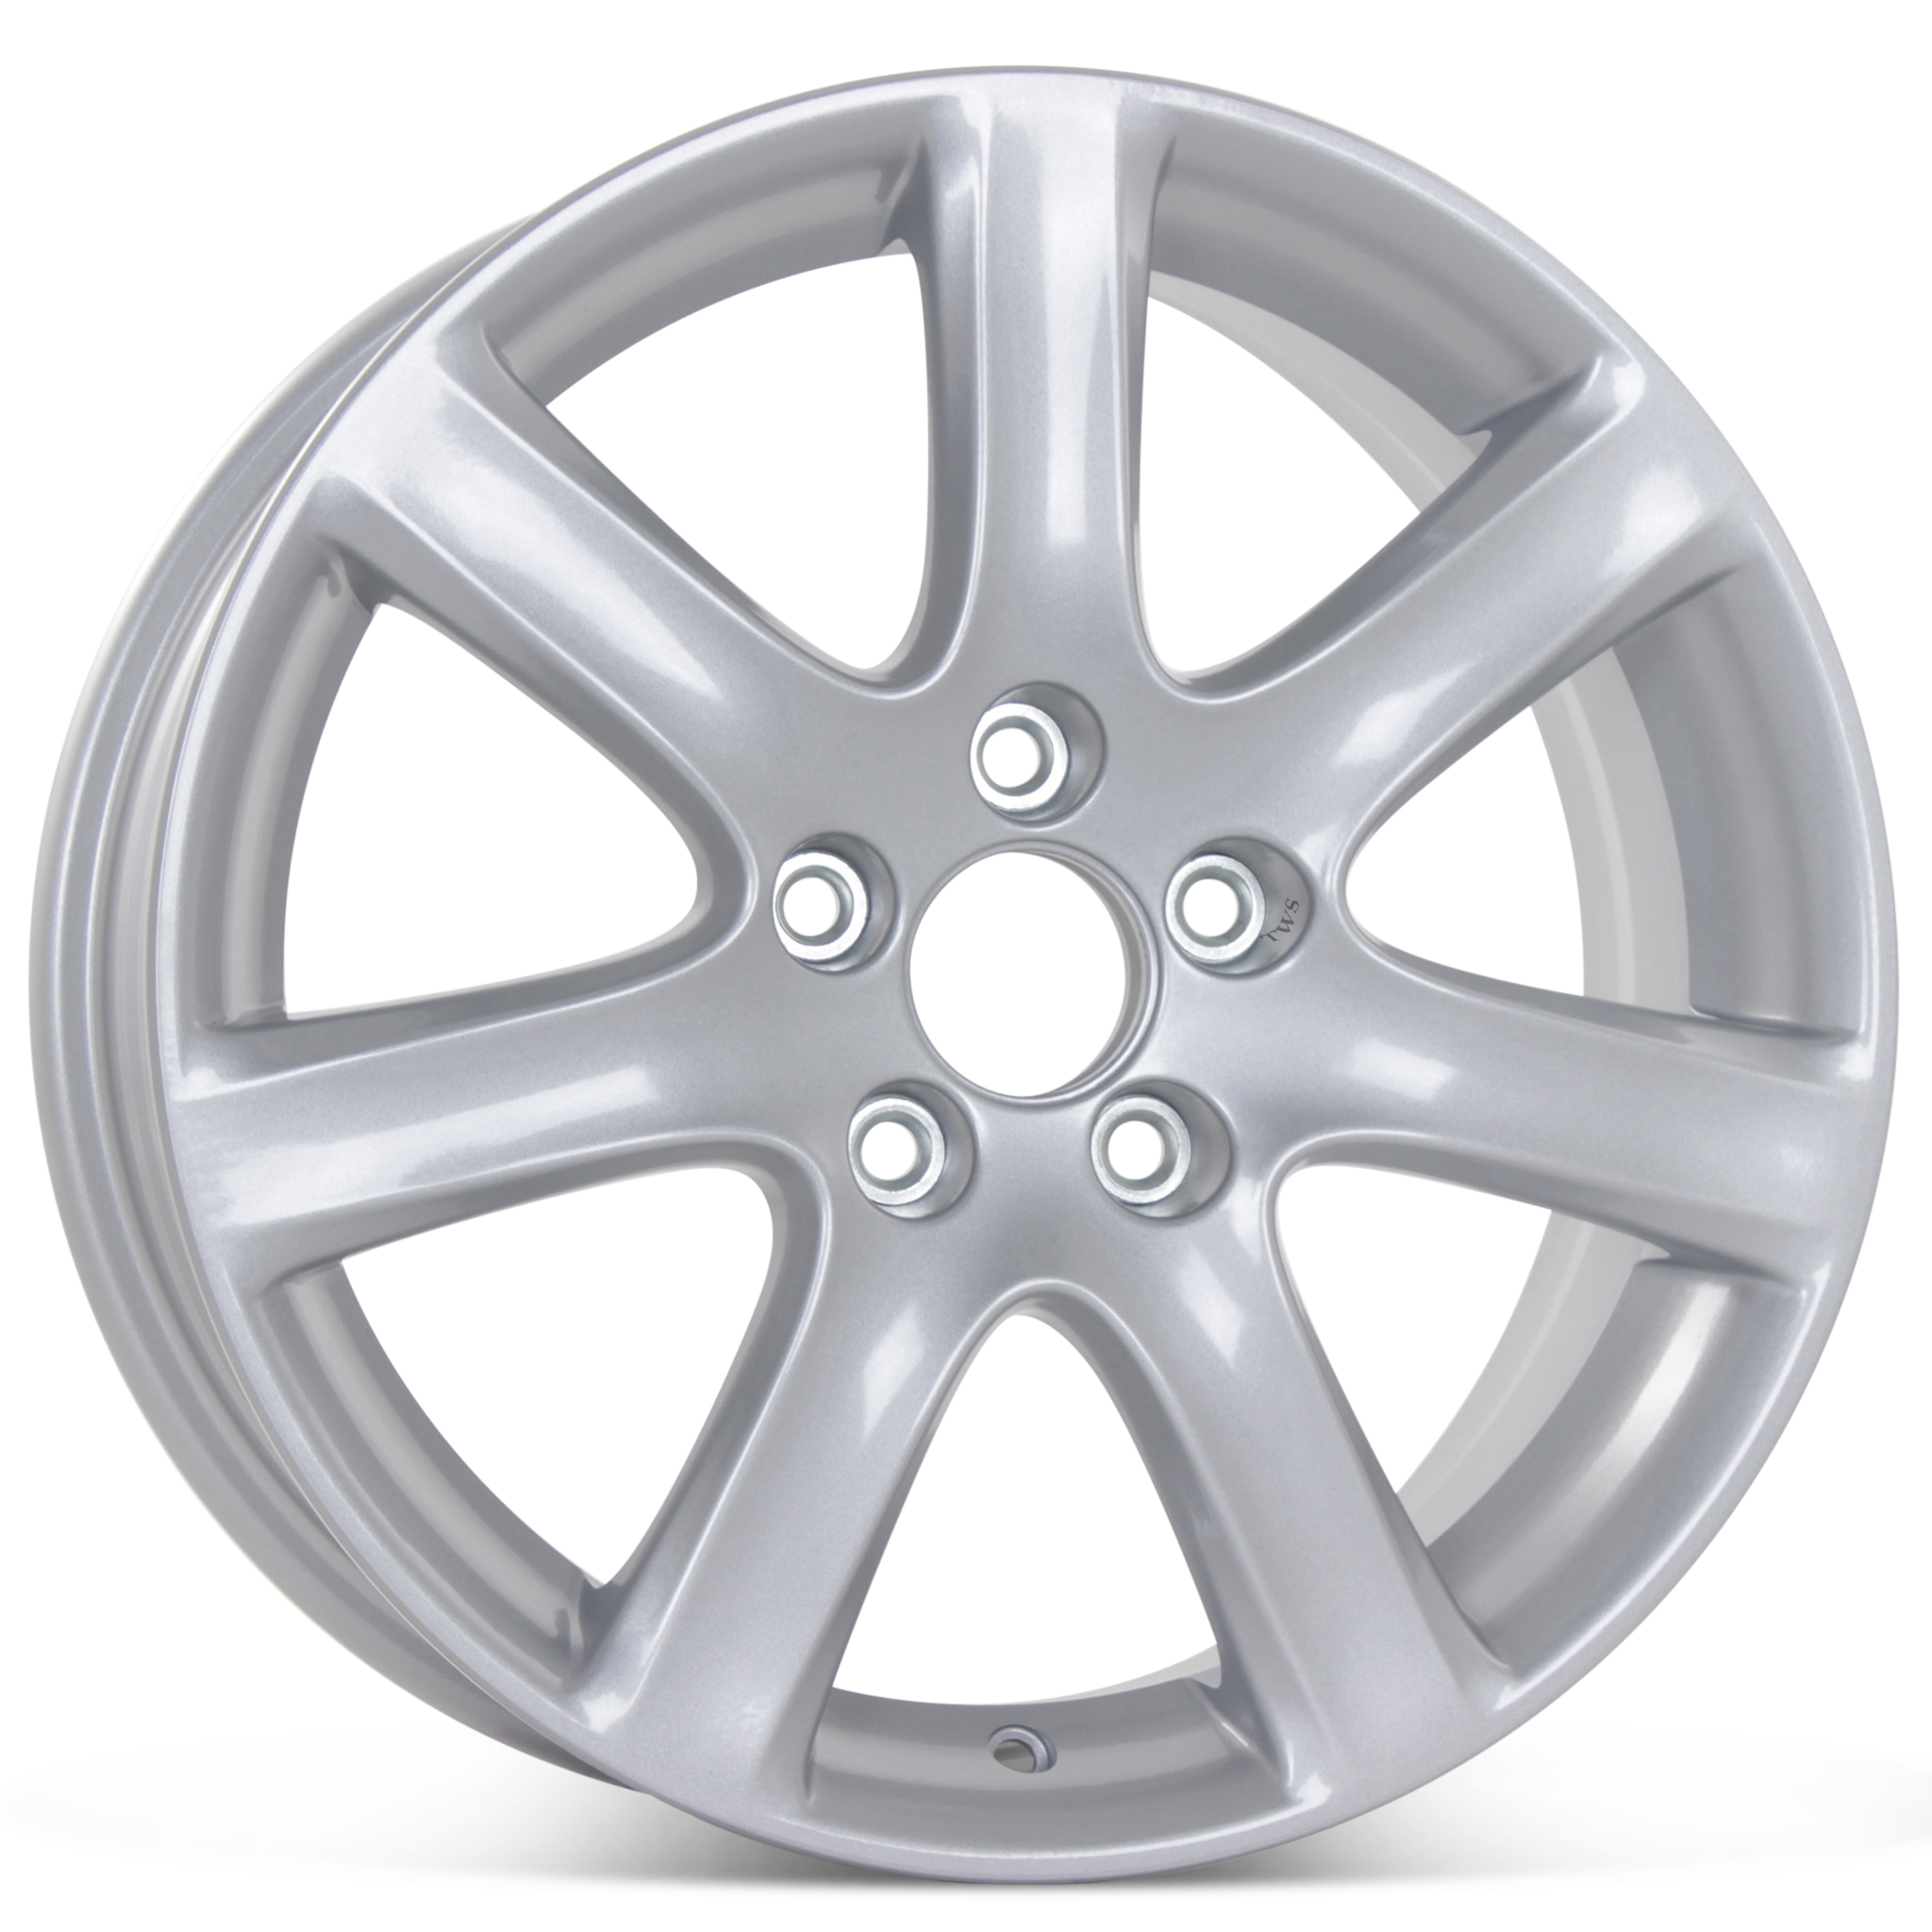 "New 17"" X 7"" Alloy Replacement Wheel For Acura TSX 2004"